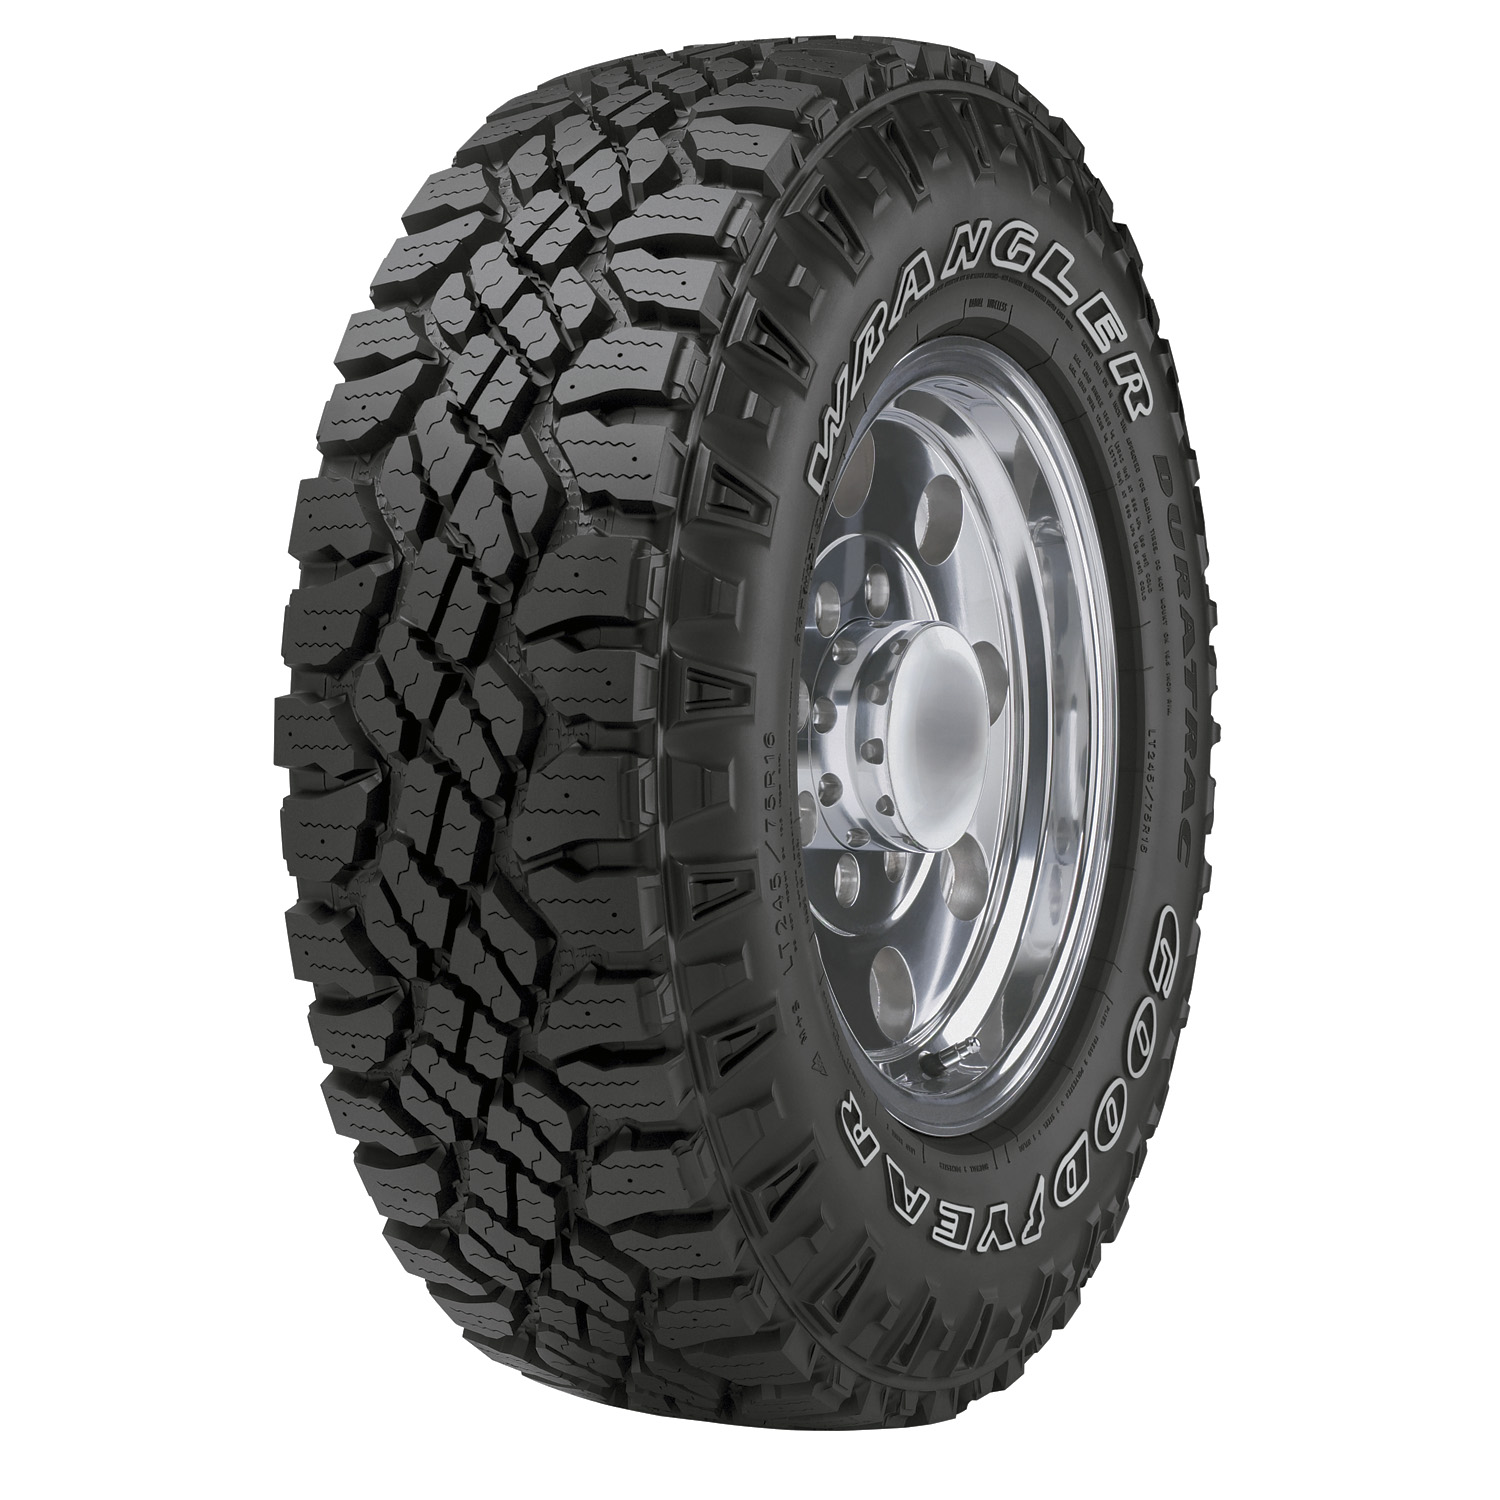 Goodyear Wrangler Duratrac - LT265/70R17E 121/118Q BSW - All Season Tire 265-70-17